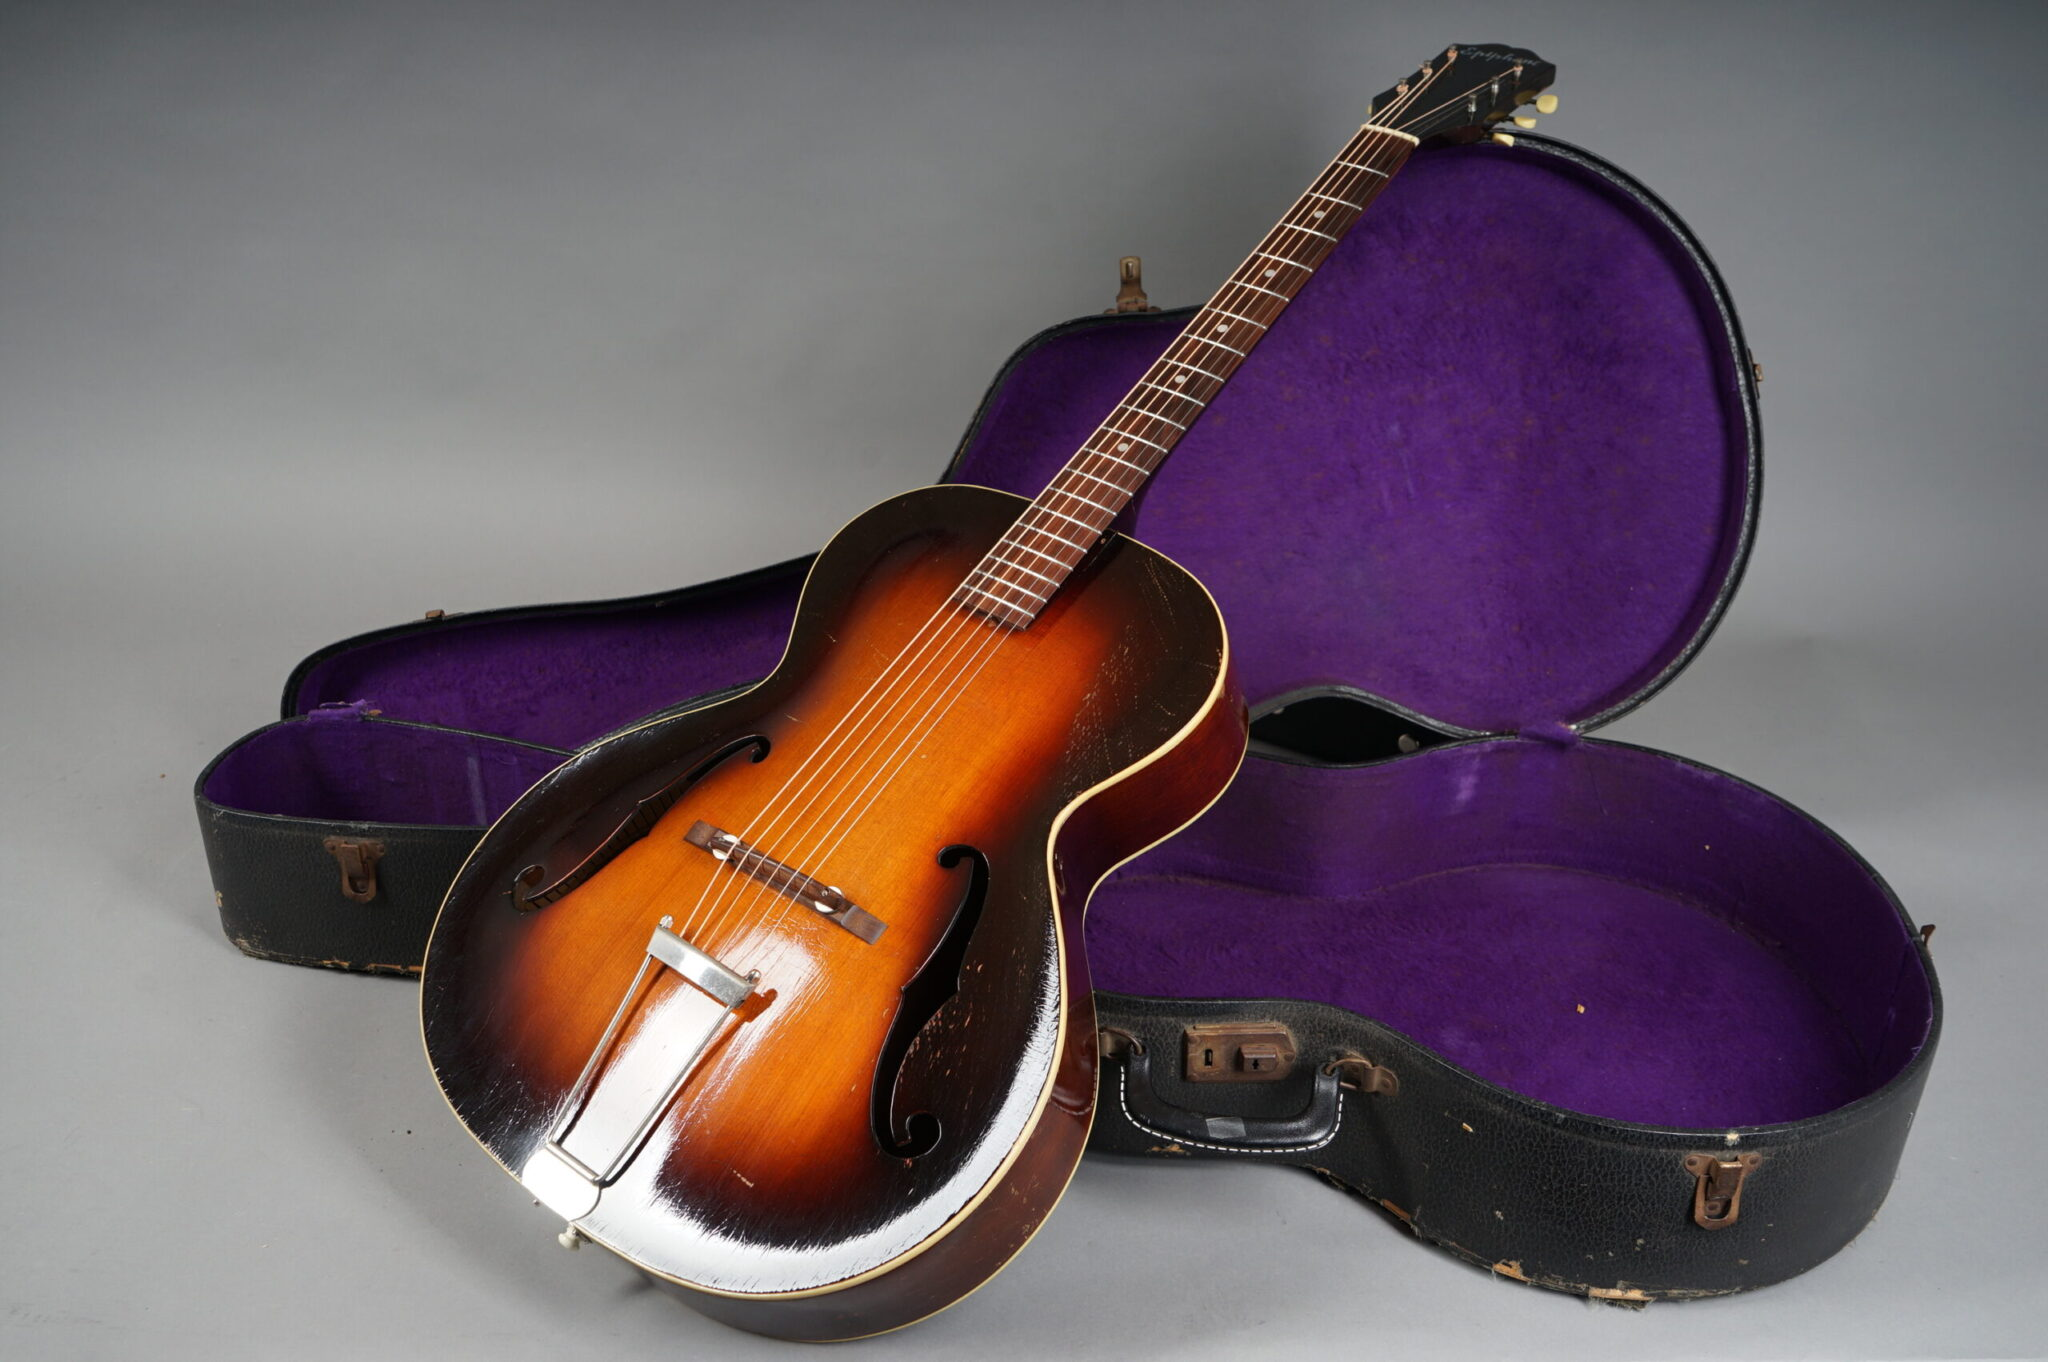 https://guitarpoint.de/app/uploads/products/1941-epiphone-olympic-16254/1941-Epiphone-Olympic-8-scaled-2048x1362.jpg